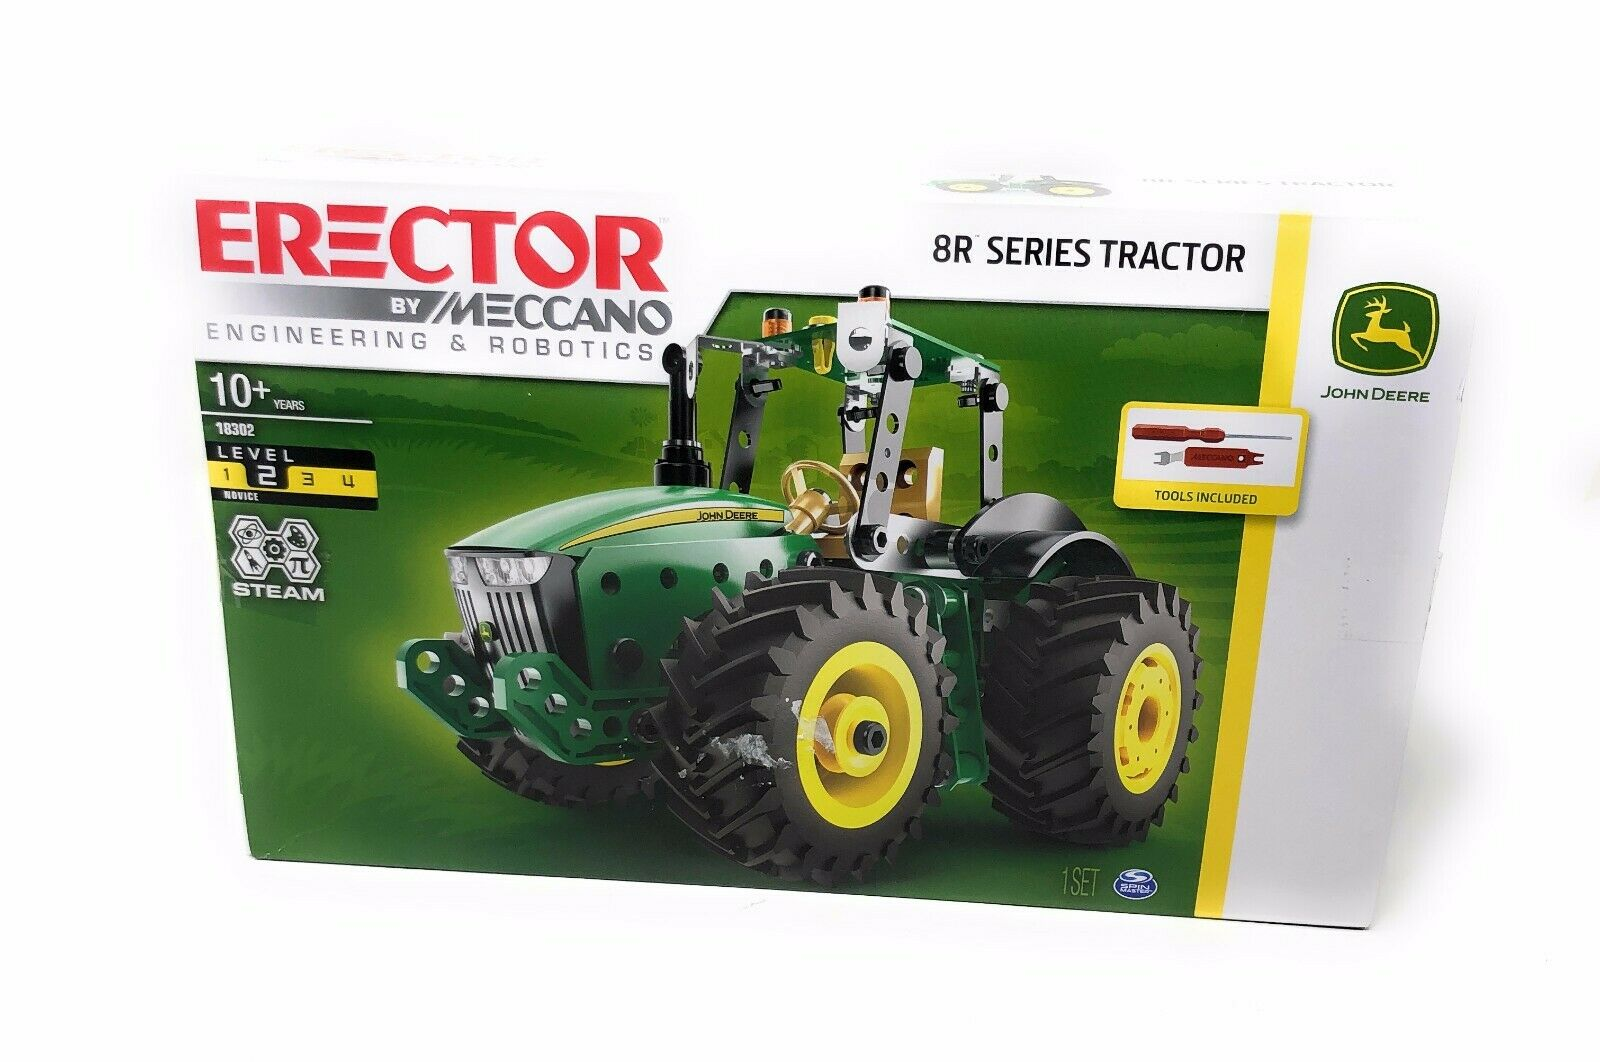 MECCANO ERECTOR Vehicle Building Set 9RT TRACTOR JOHN DEERE Spinmaster NIB